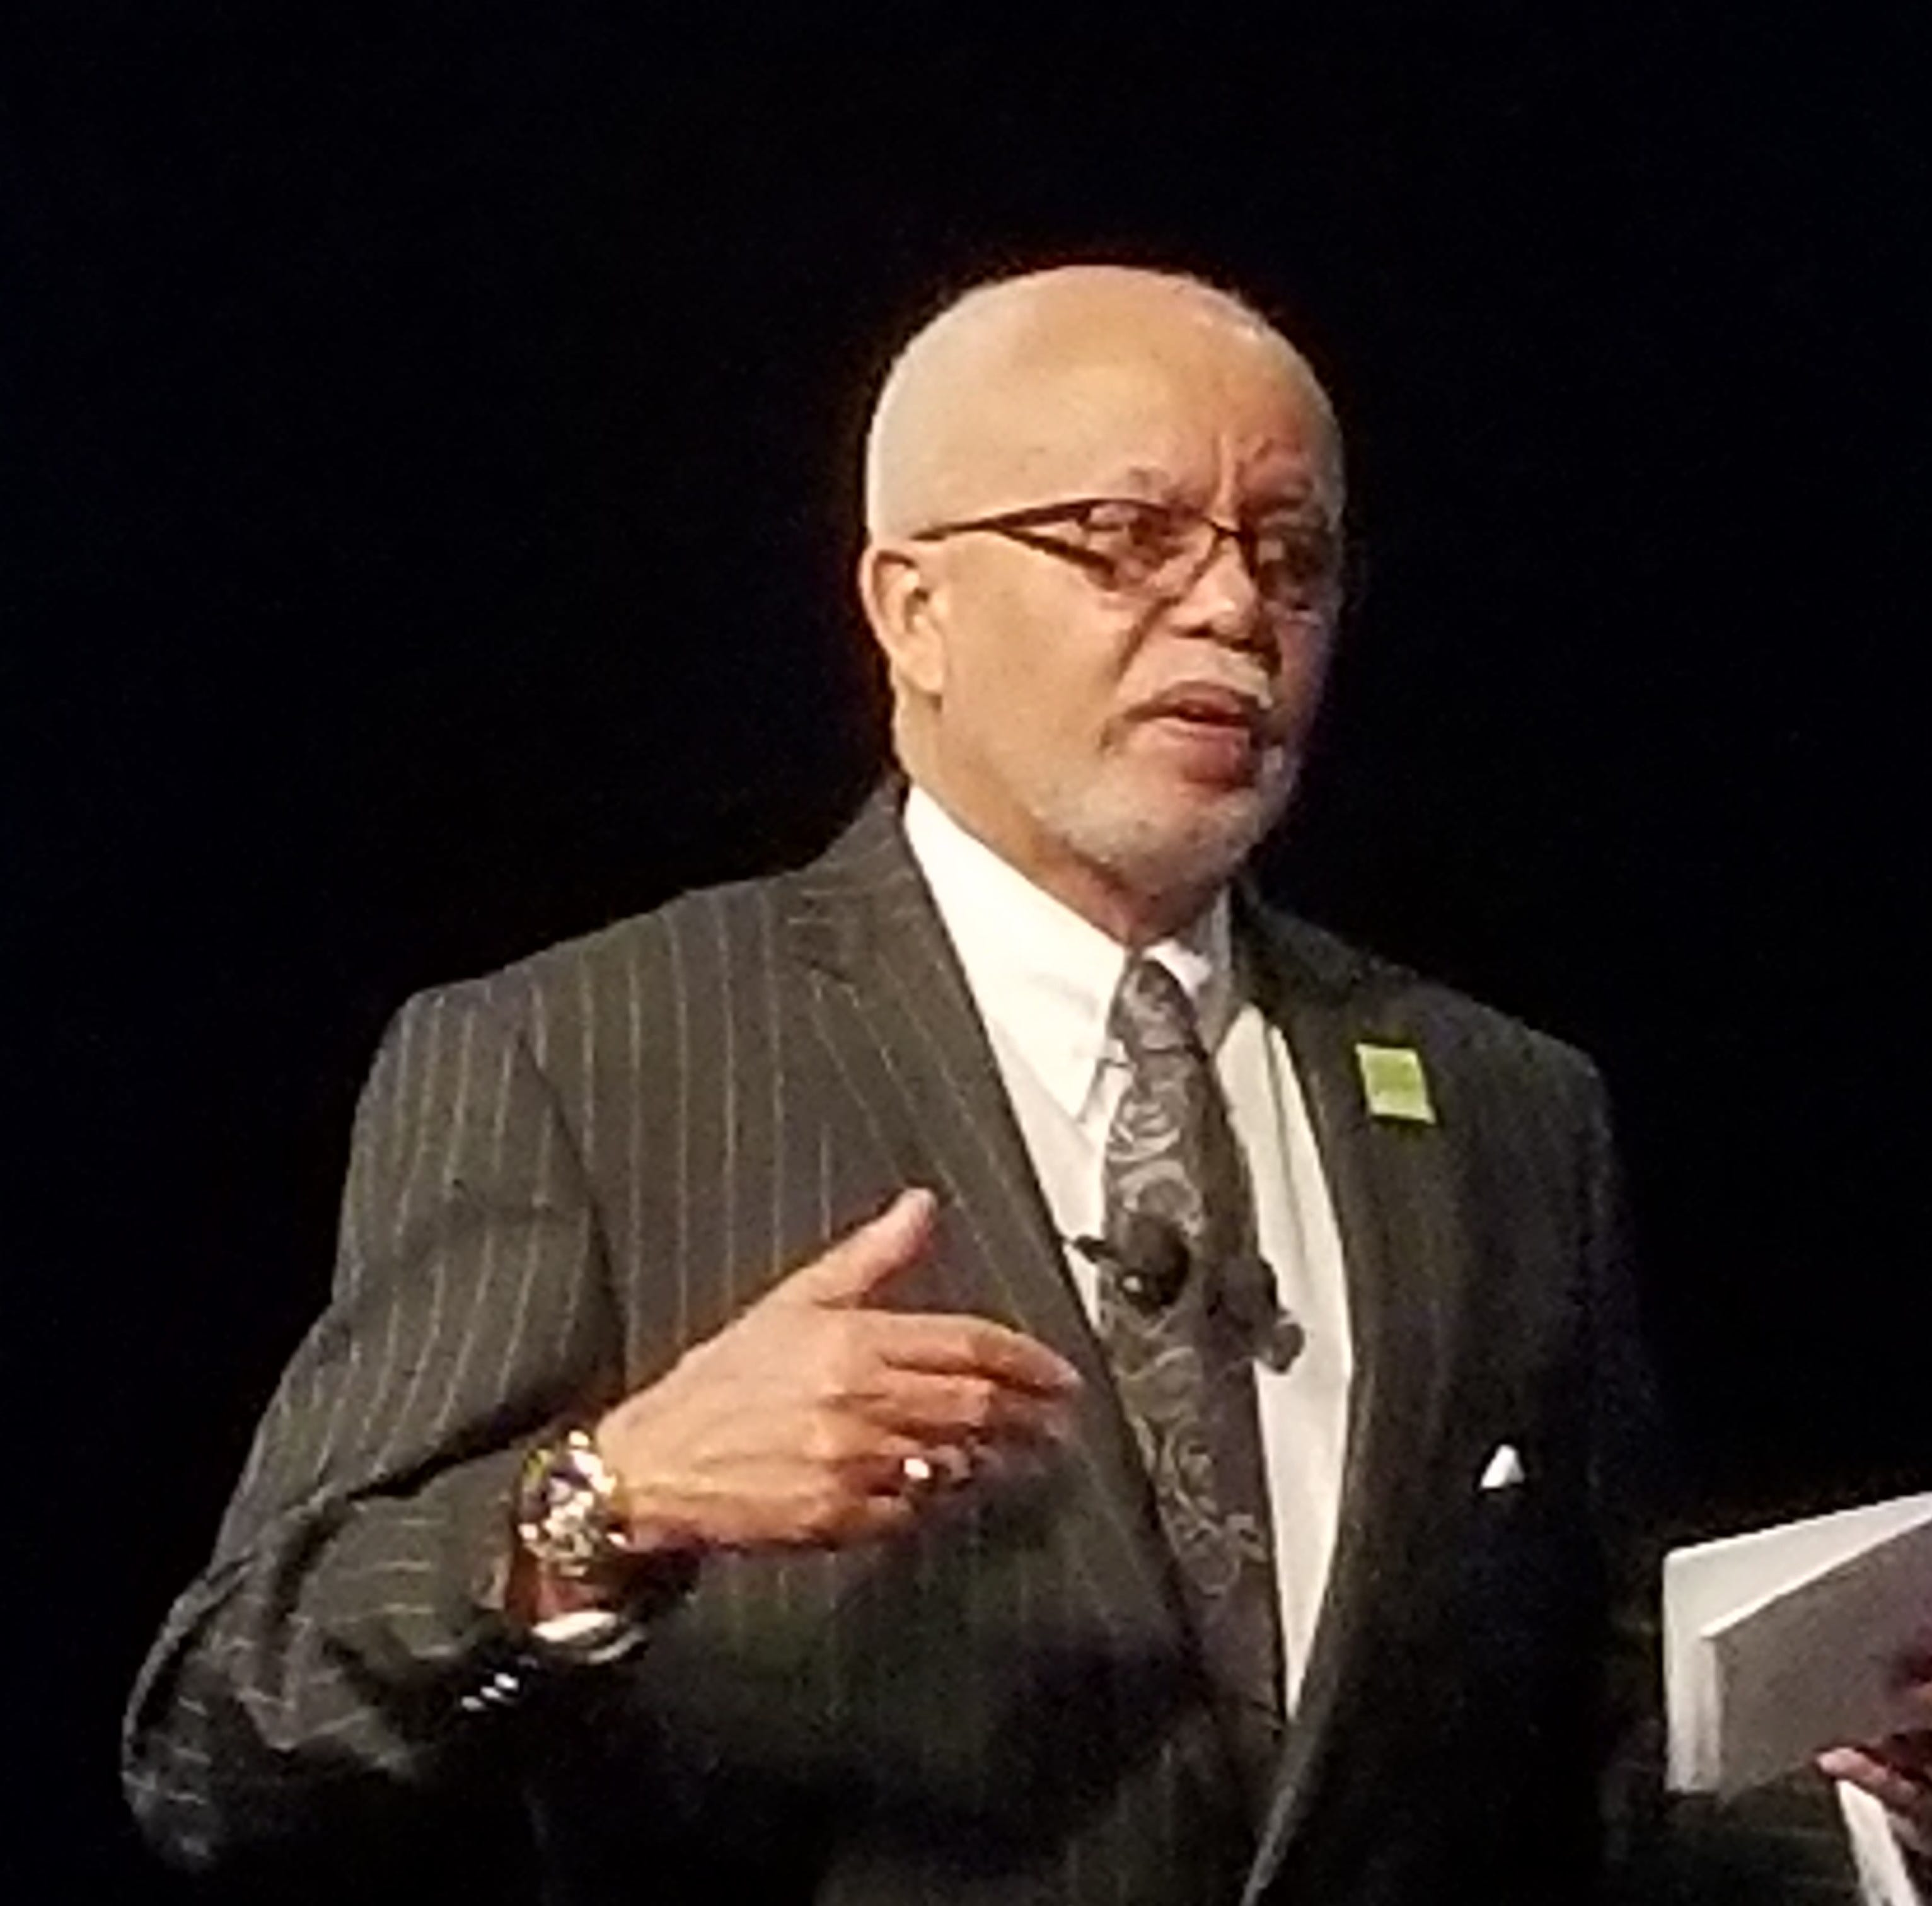 Evans calls for property tax payment plan review in Wayne Co.